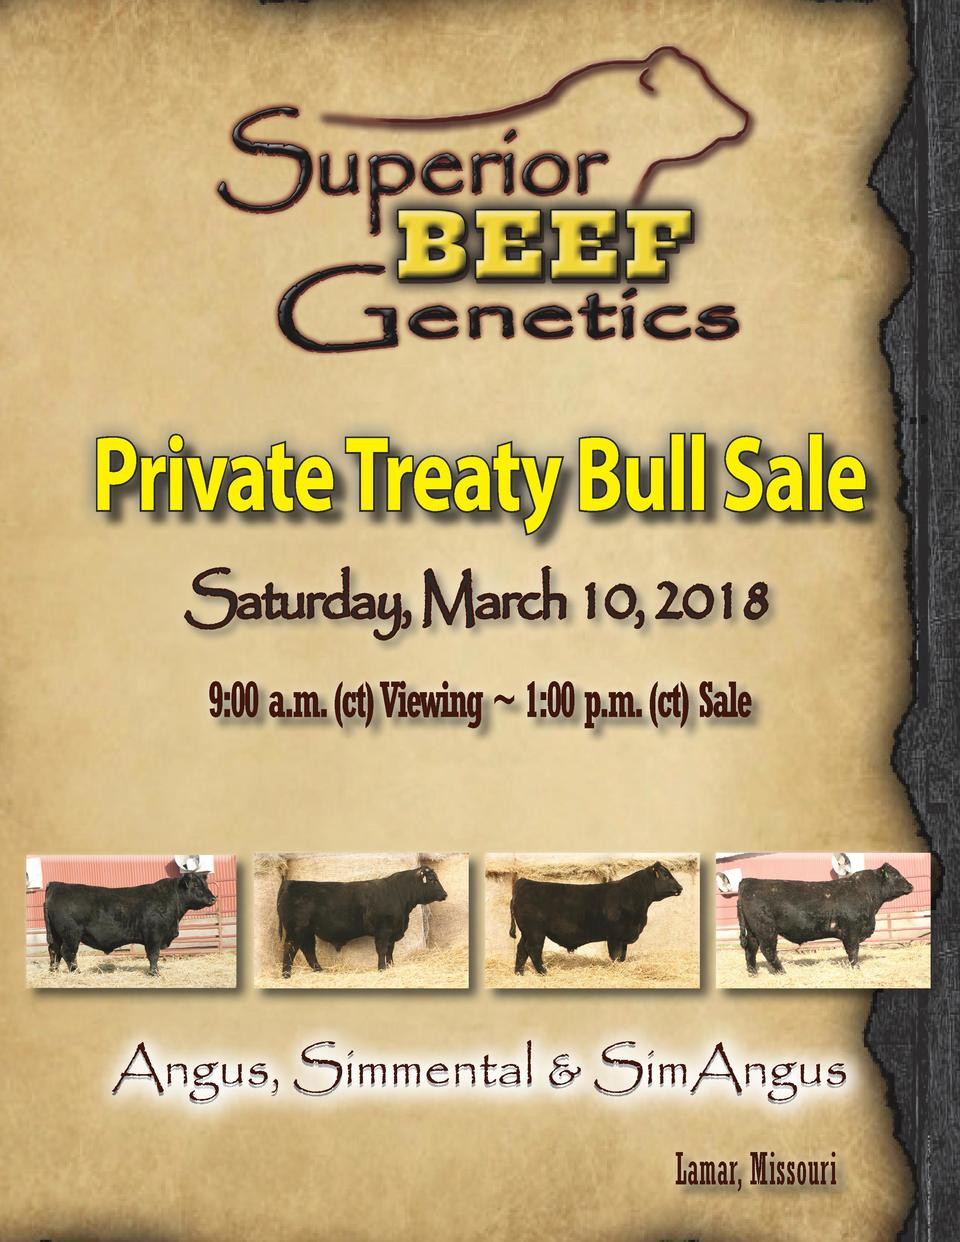 Private Treaty Bull Sale Saturday, March 10, 2018 9 00 a.m.  ct  Viewing   1 00 p.m.  ct  Sale  Angus, Simmental   SimAngu...